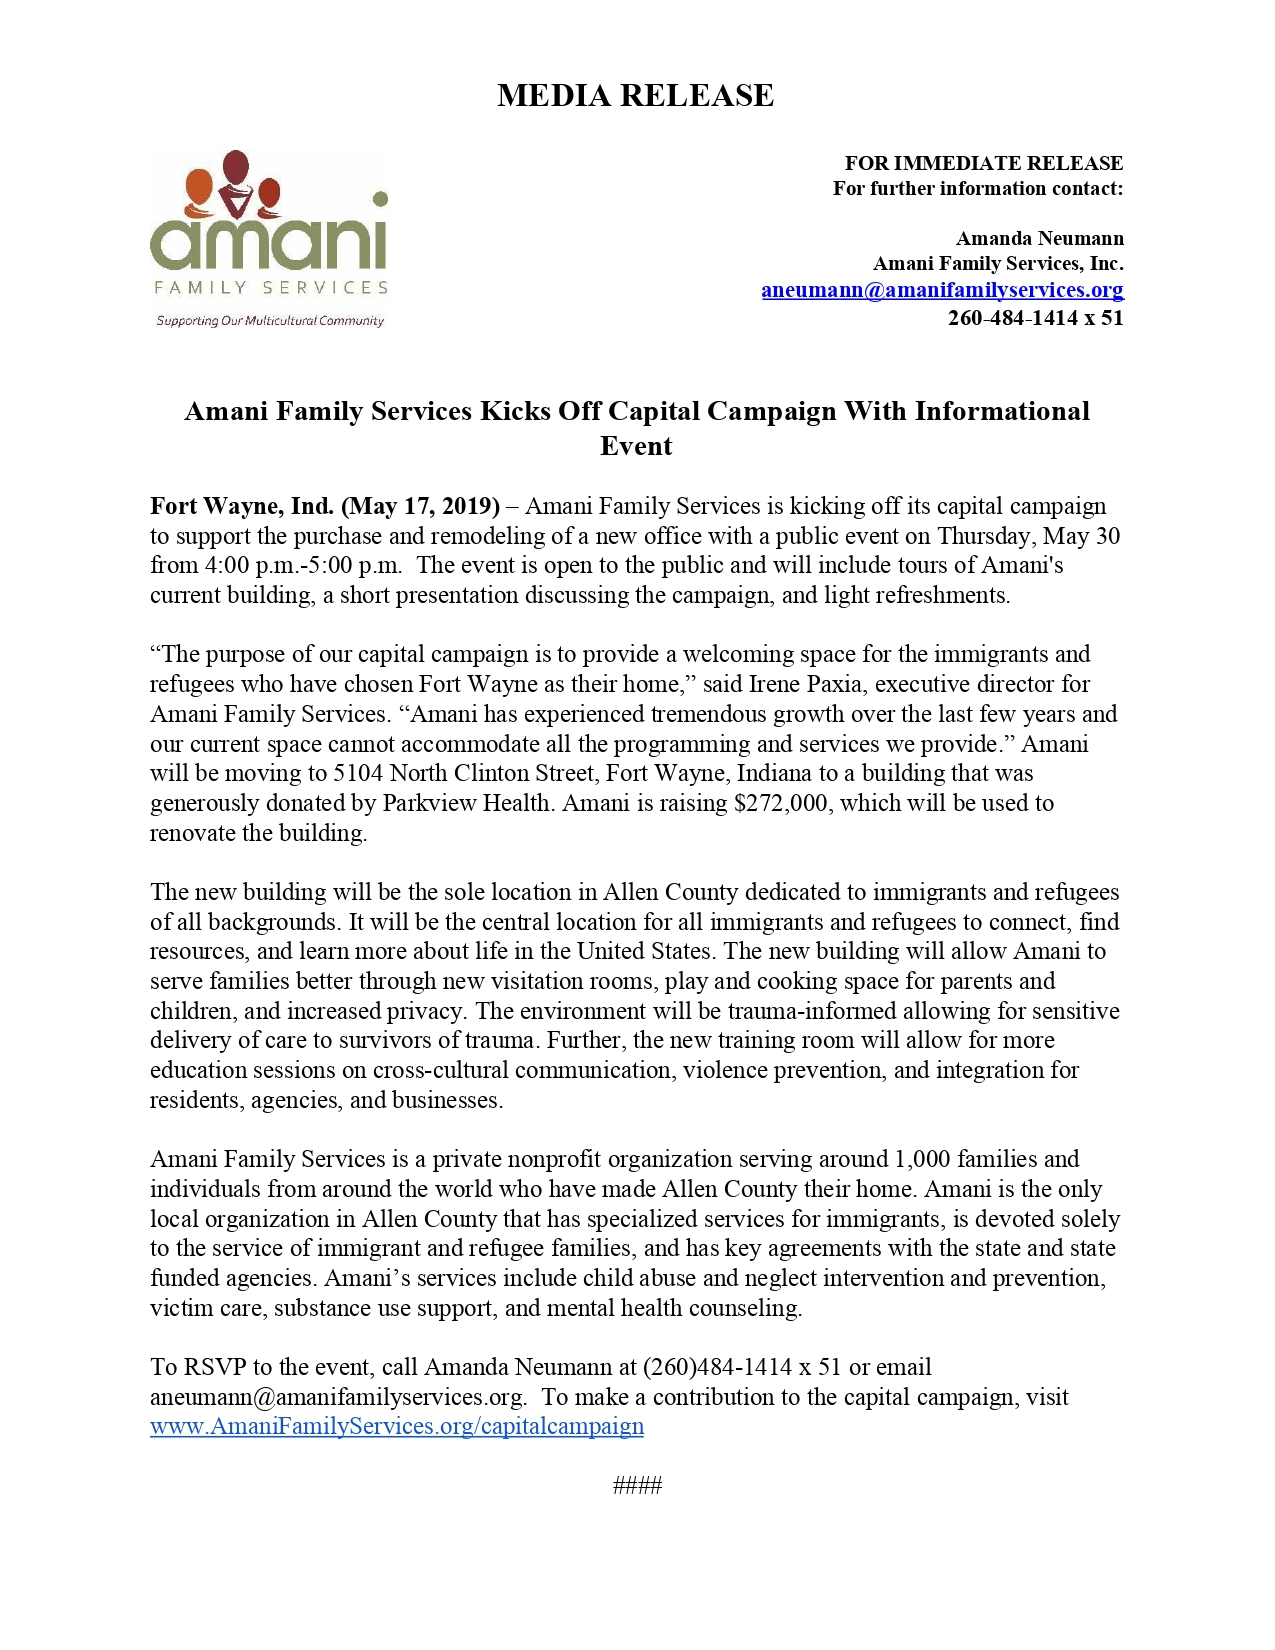 Capital Campaign Event Press Release_page-0001.jpg